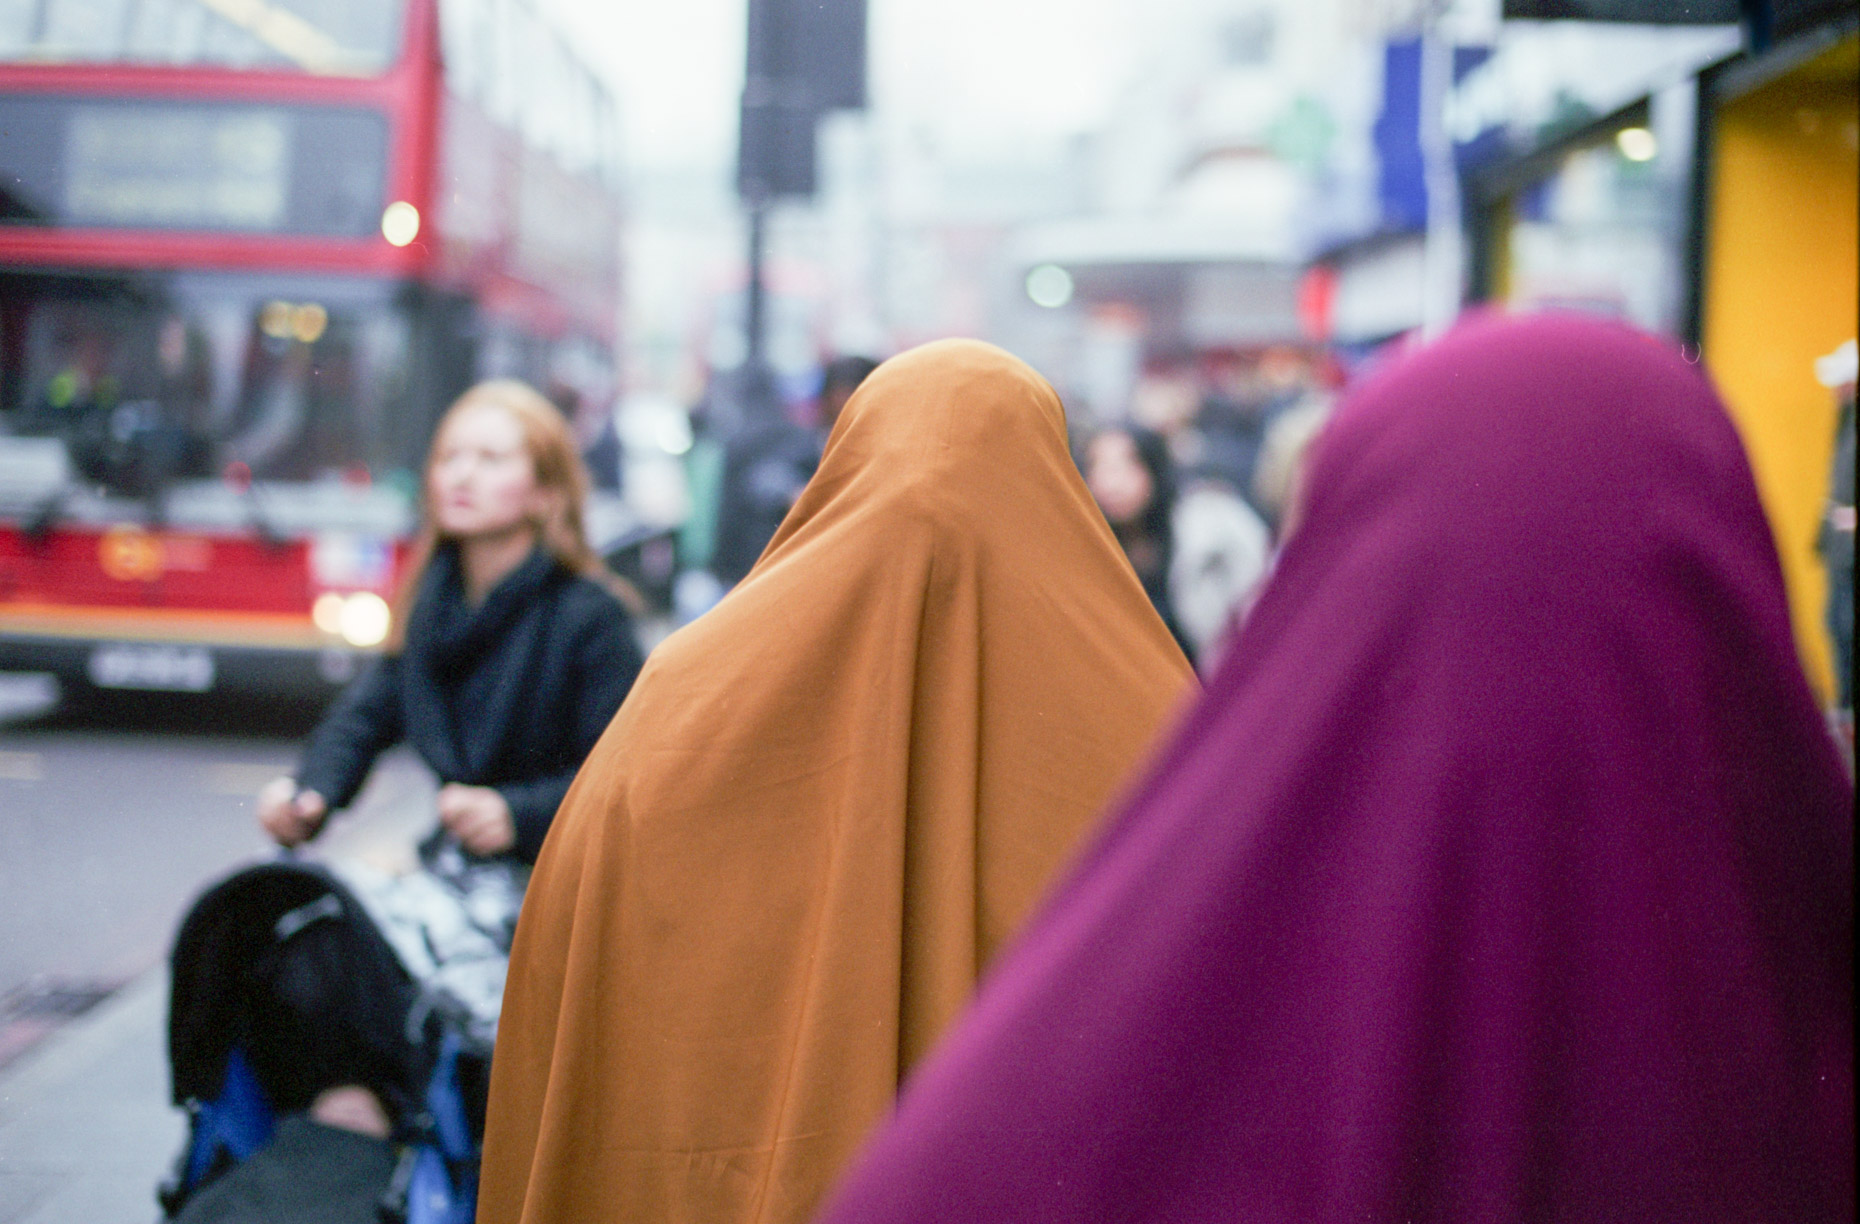 Two muslim women walk through the crowded streets of Brixton, London on a December afternoon.